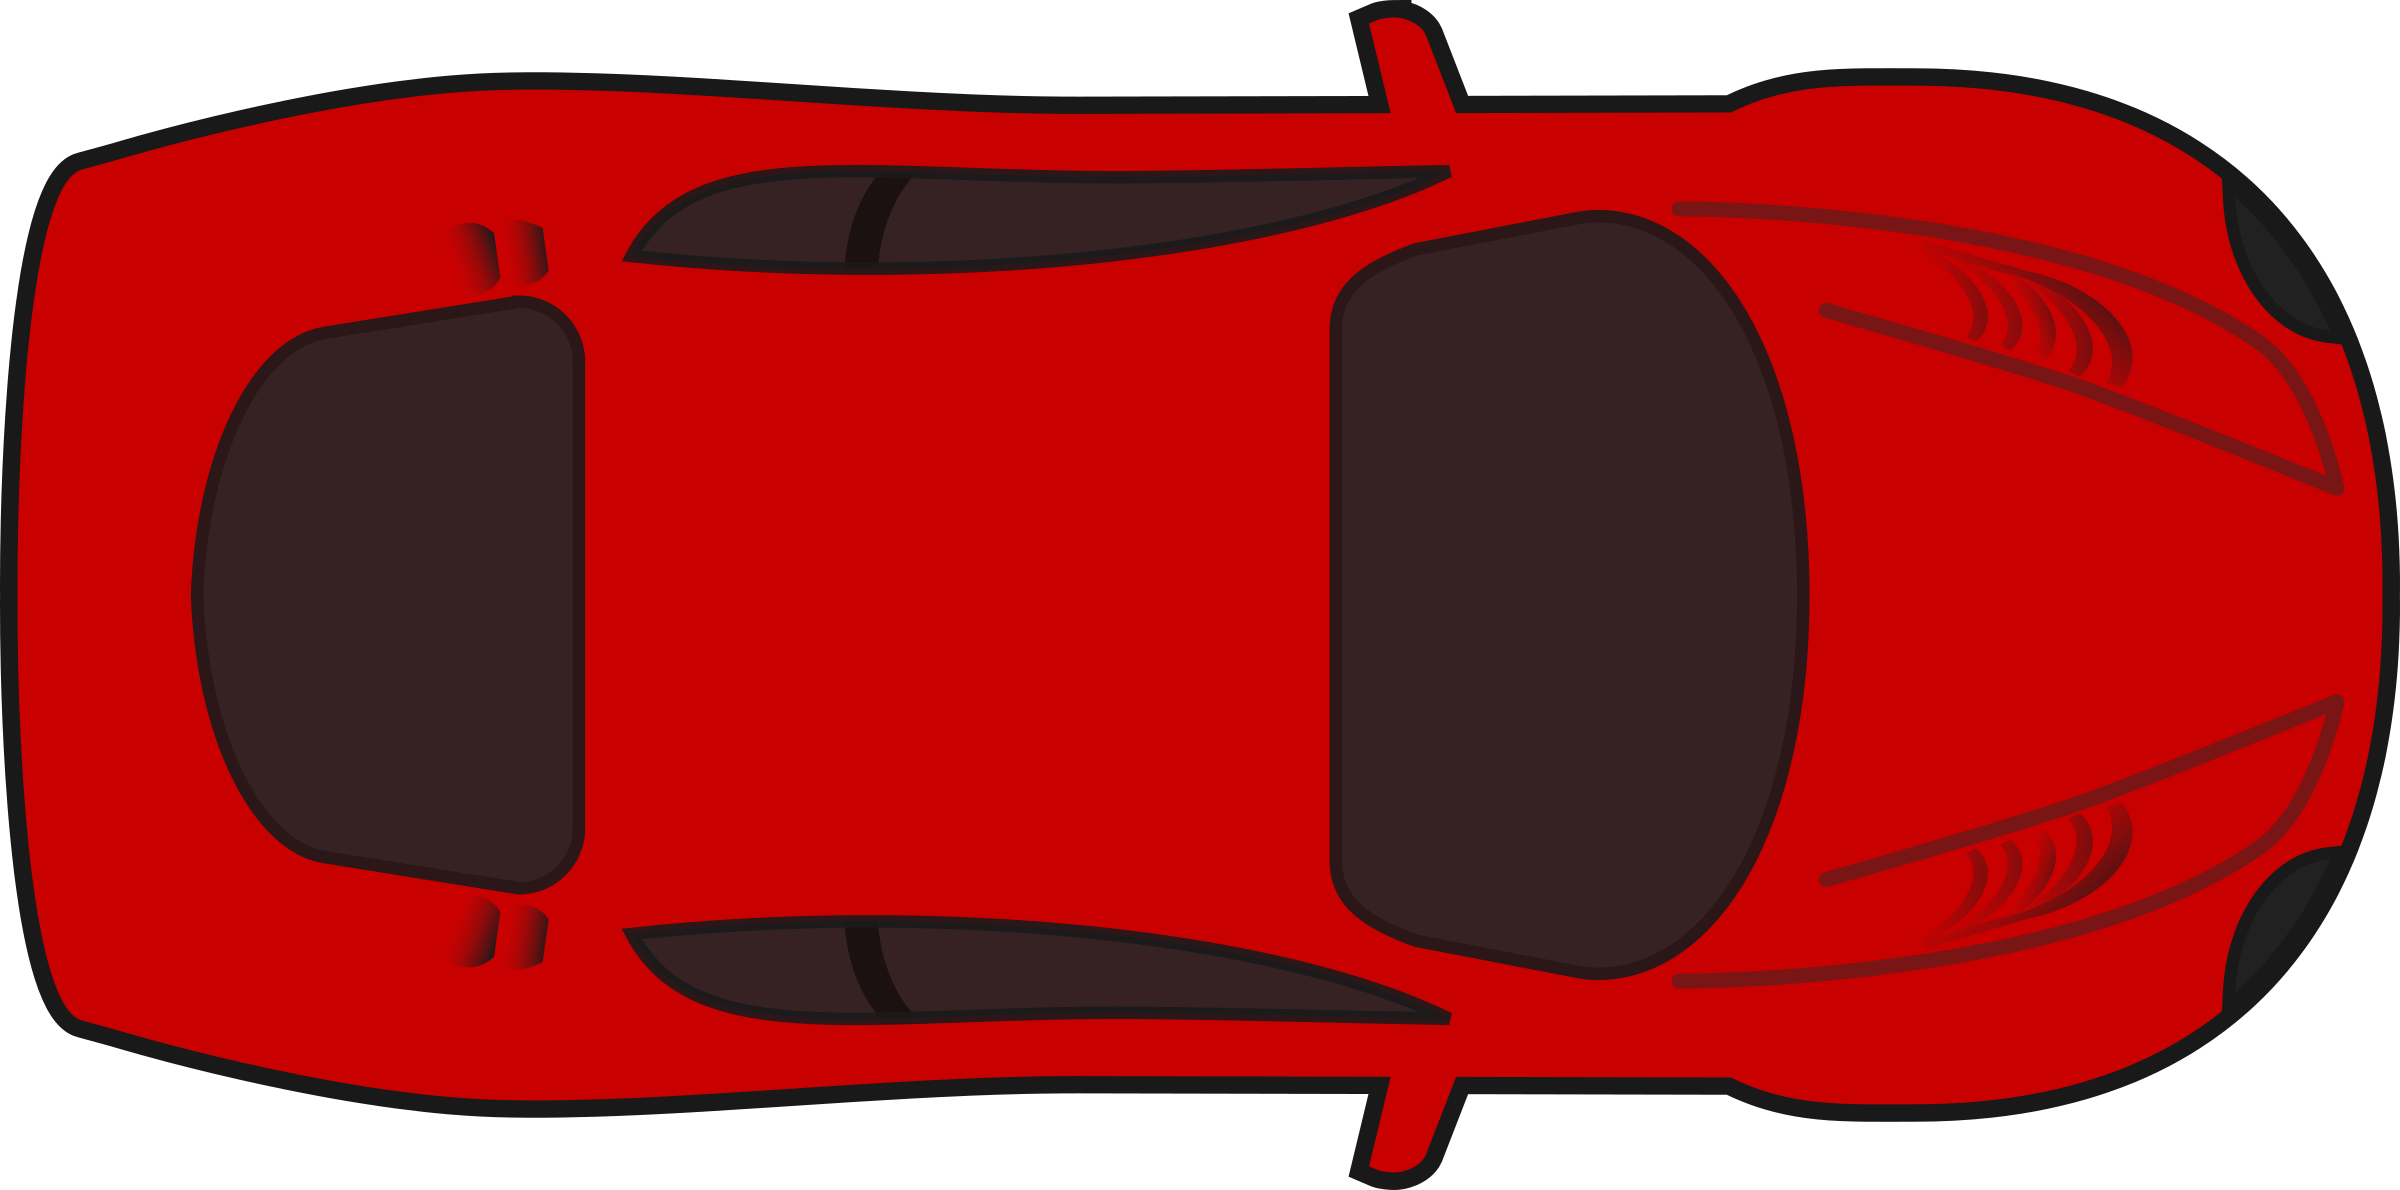 Racing car clipart picture transparent download Clipart - Red racing car top view picture transparent download